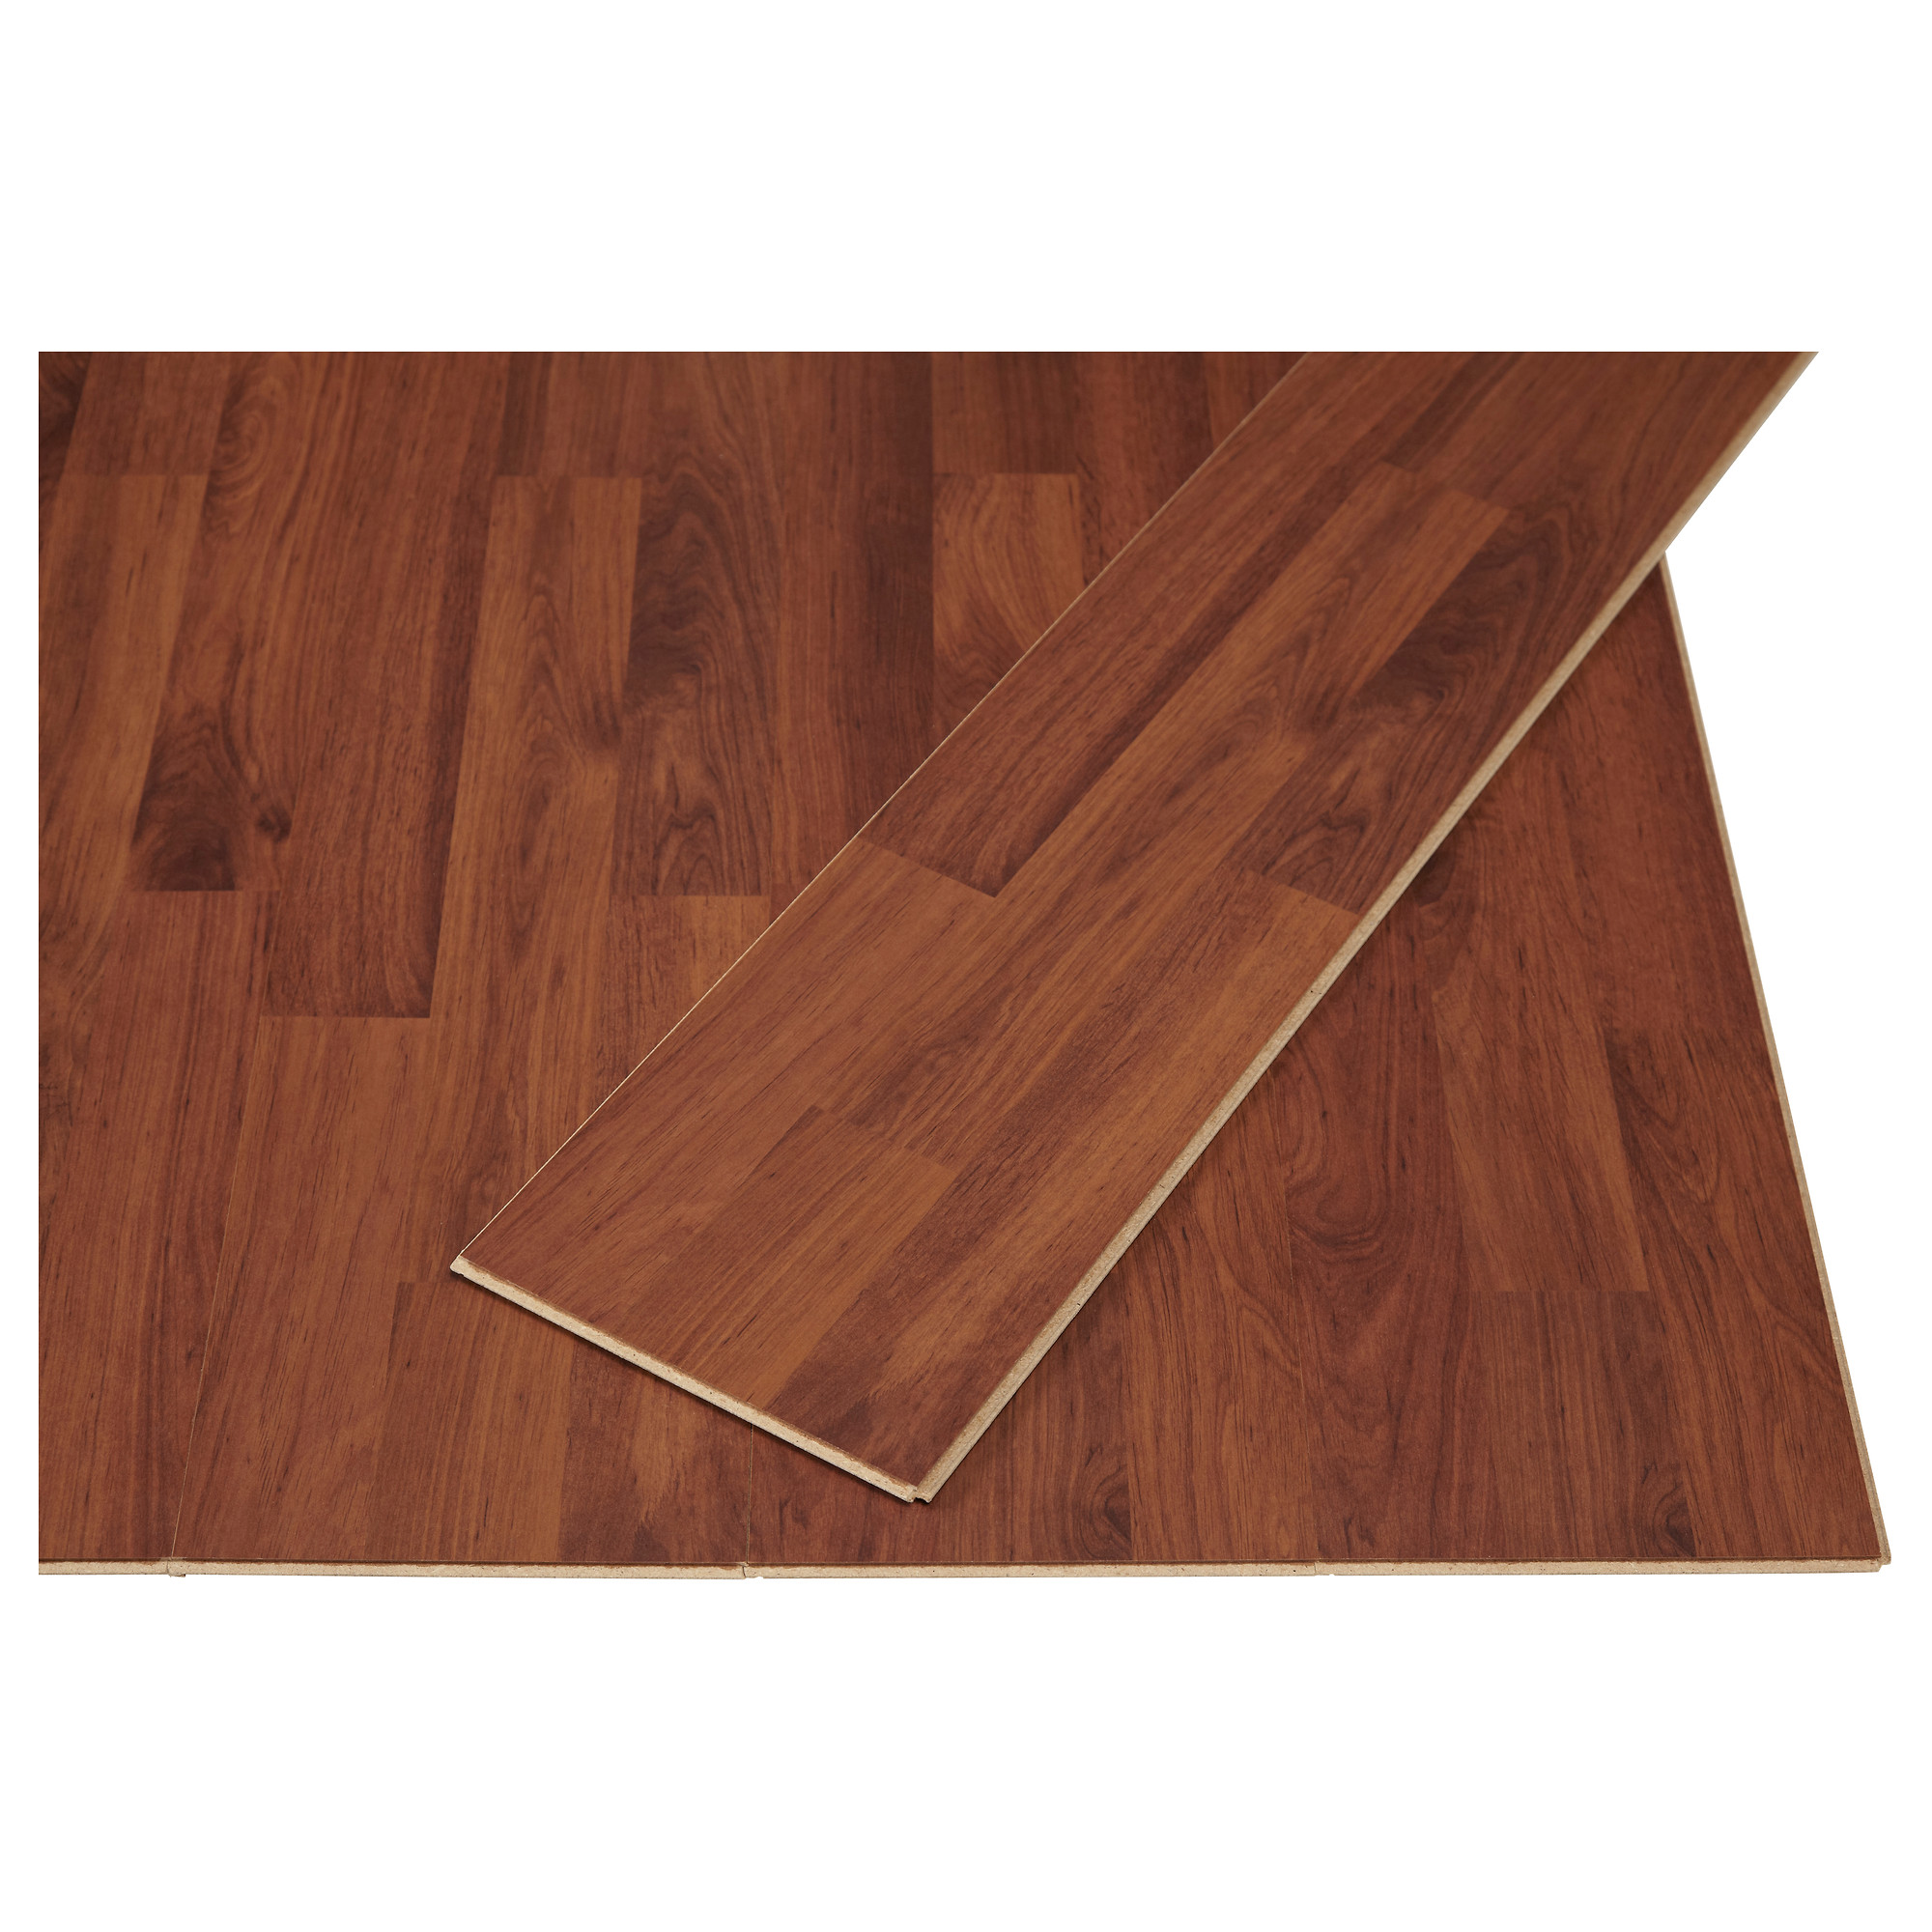 Different colors of laminate flooring wood floors for Different colors of hardwood floors